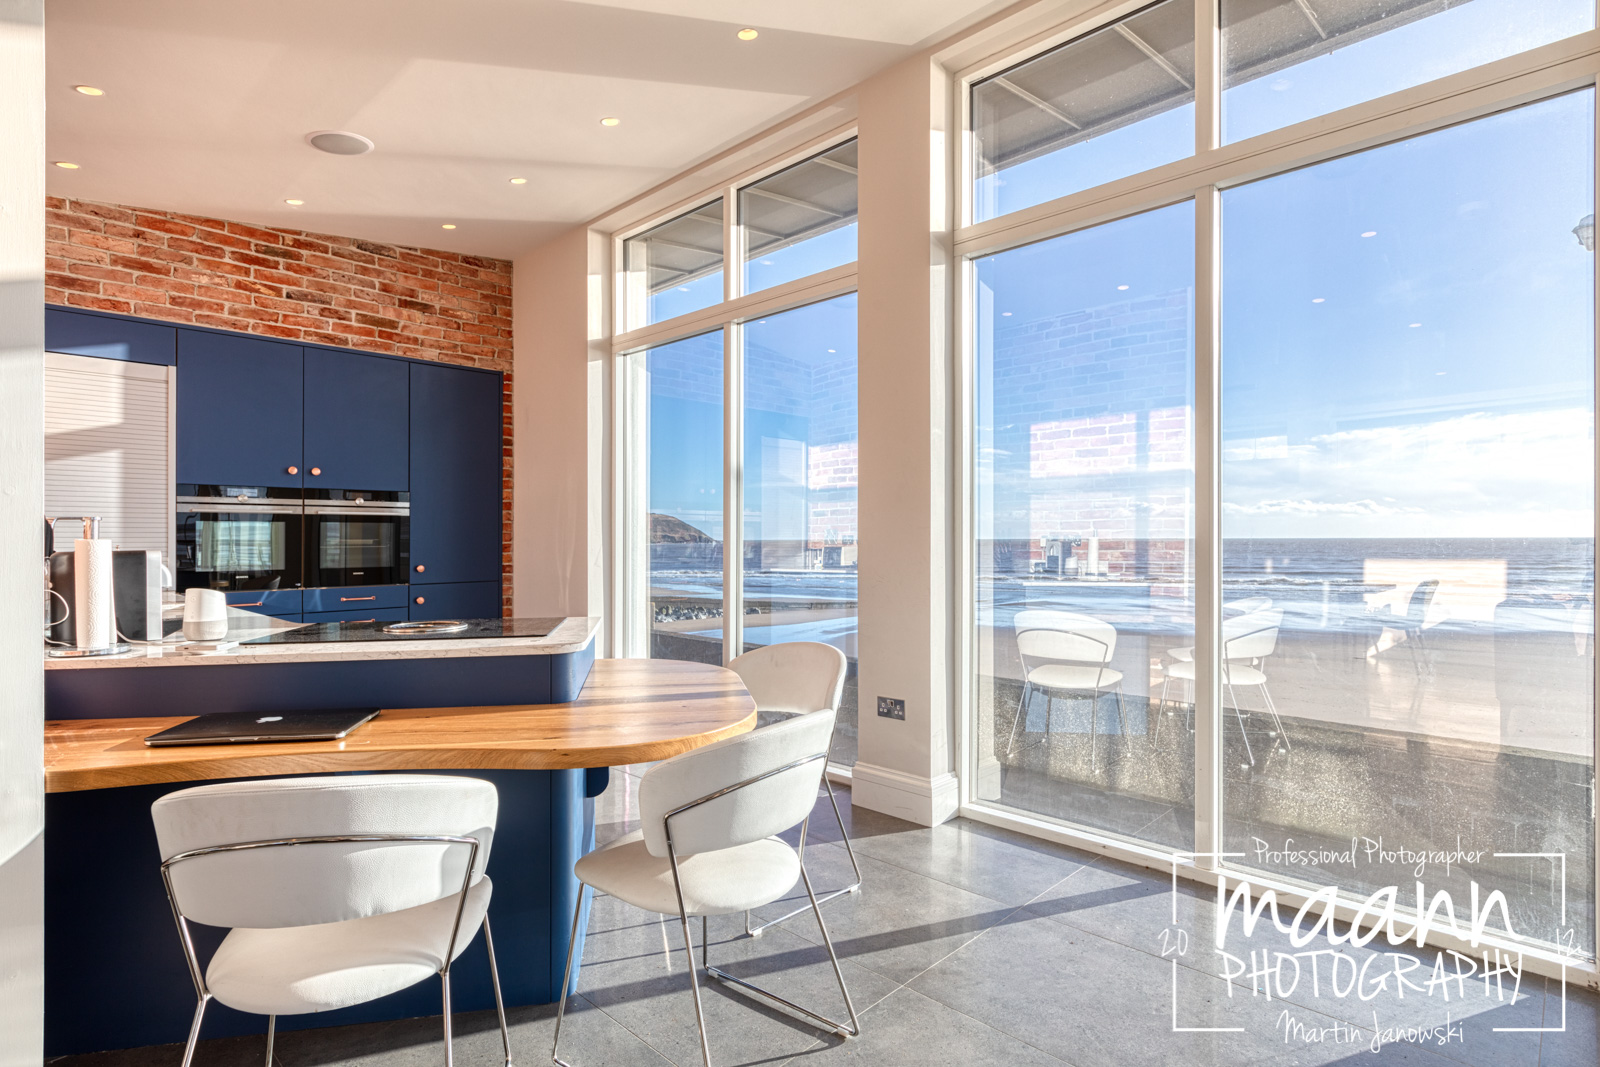 Beach House in Youghal – Interior Photography | Architectural Photography